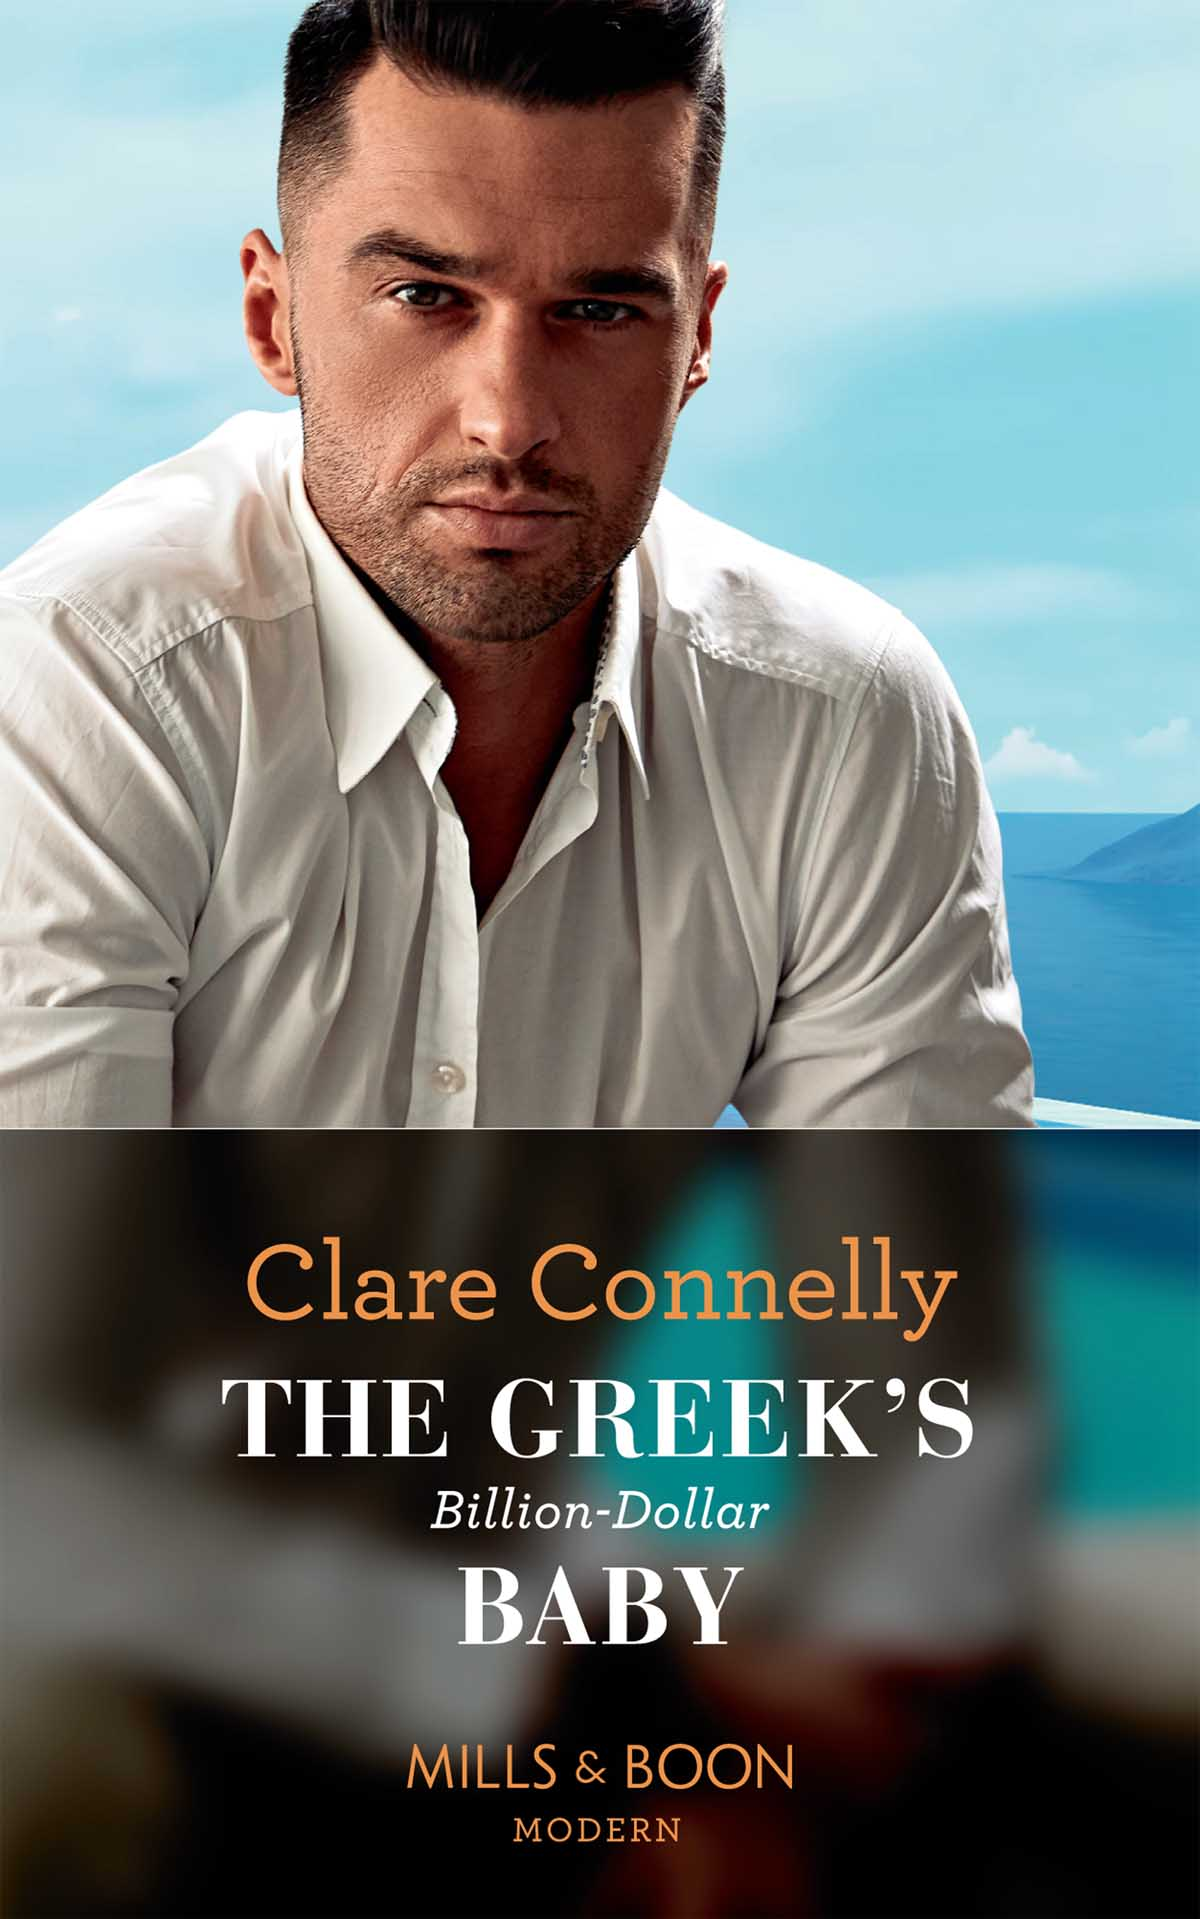 Clare Connelly The Greek's Billion-Dollar Baby his guilt